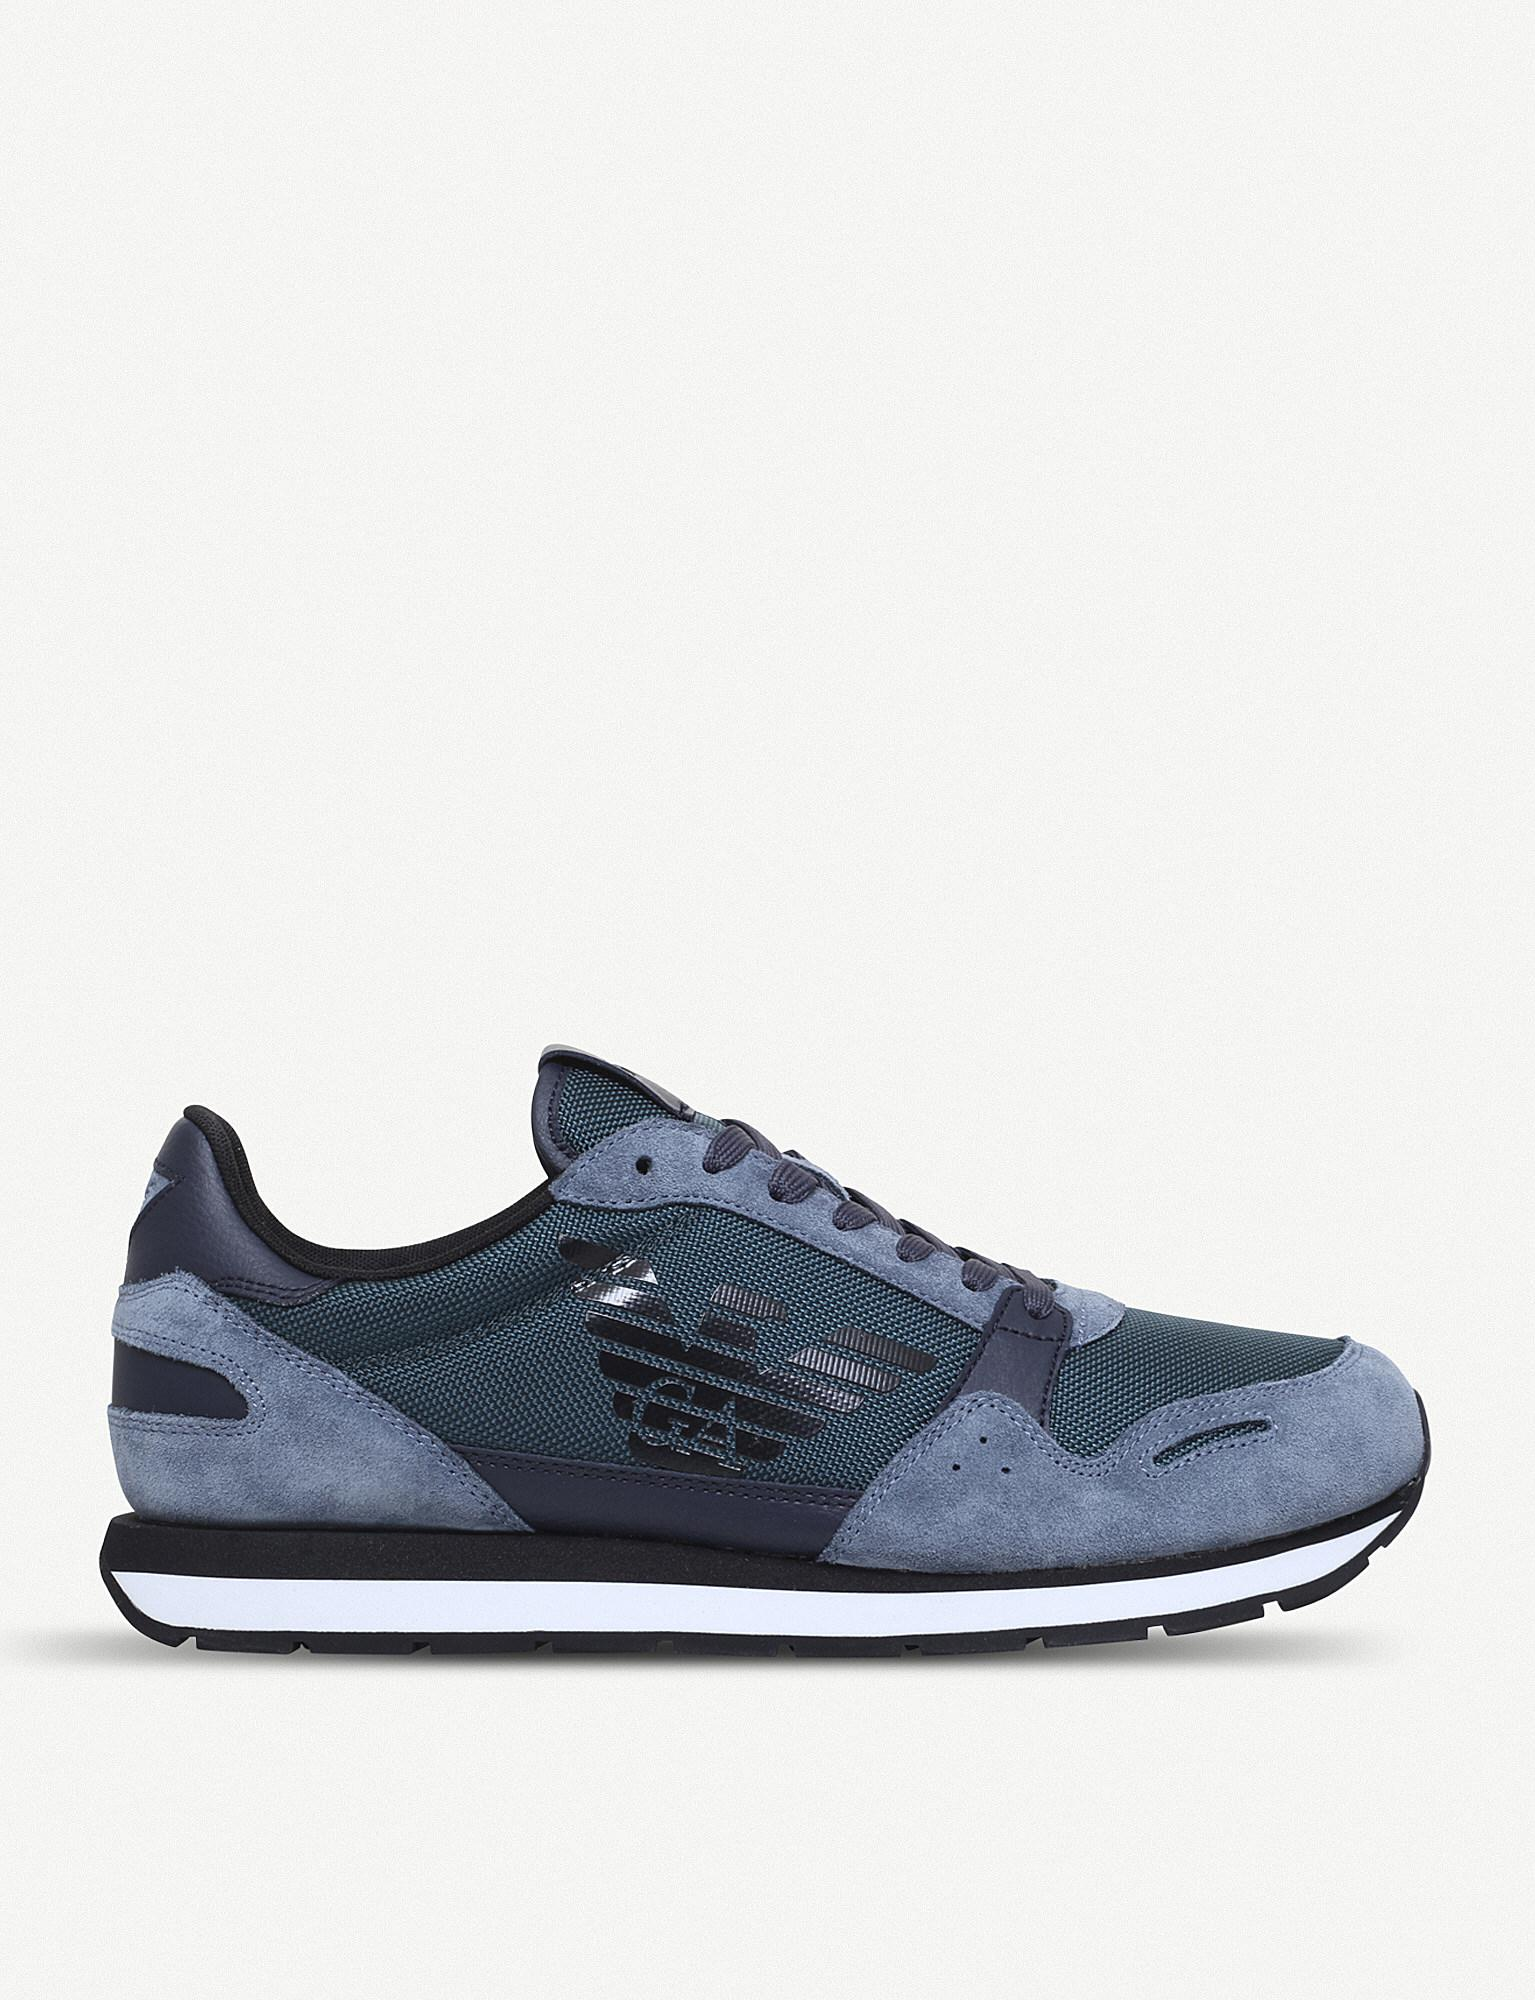 Giorgio Armani low-top runner sneakers largest supplier for sale popular really cheap online limited edition for sale big sale for sale K1WbspuGqK